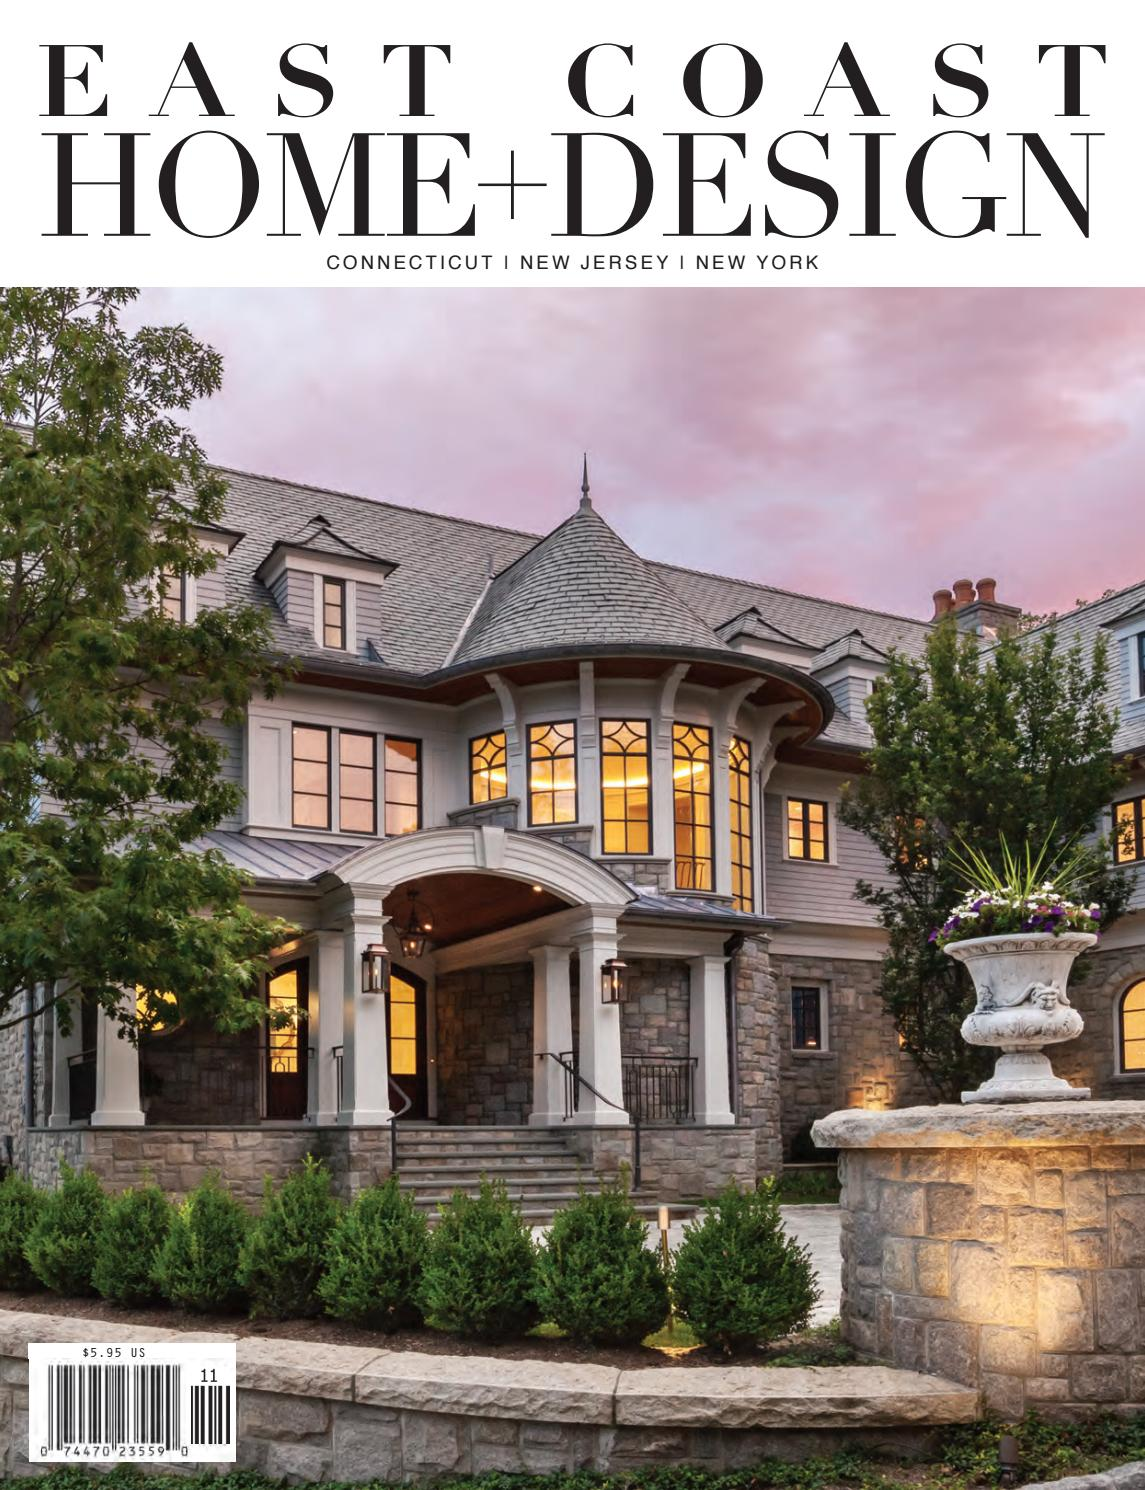 ranch home remodel annie selke ranch house makeover home redesign East Coast Home + Design by East Coast Home Publishing - issuu